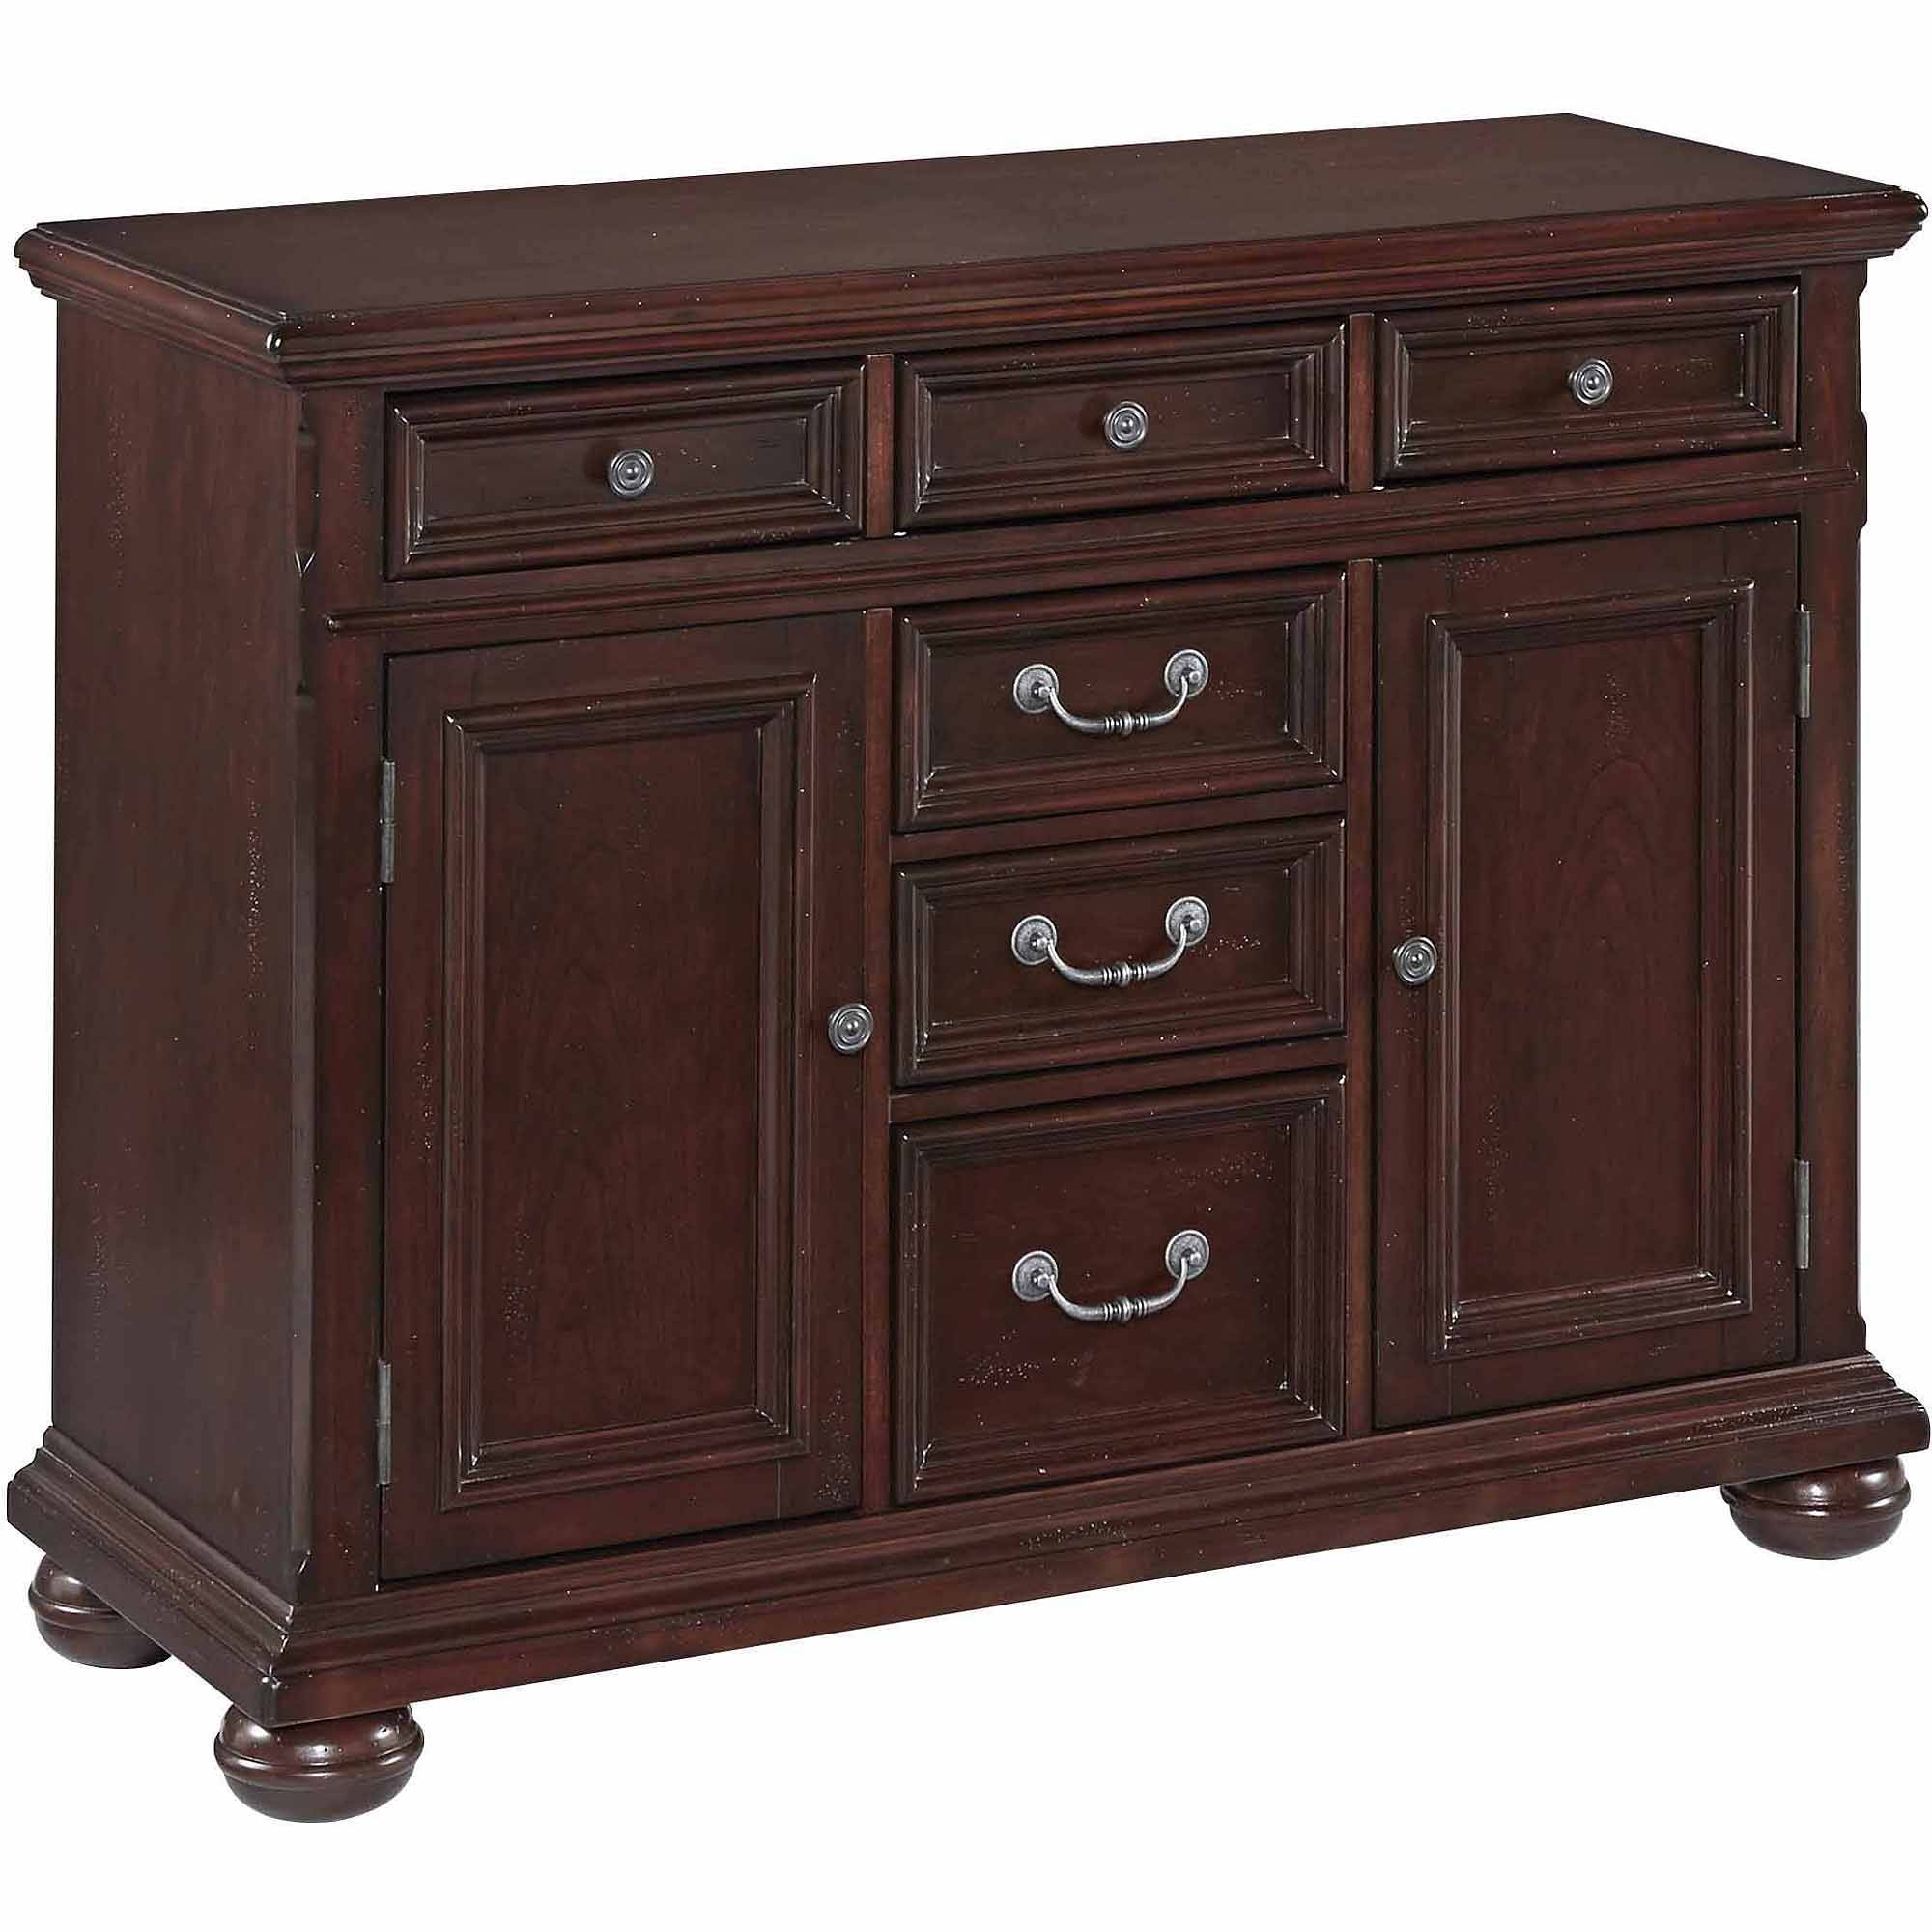 Sideboards & Buffets - Walmart with regard to Sideboards With Drawers (Image 12 of 15)